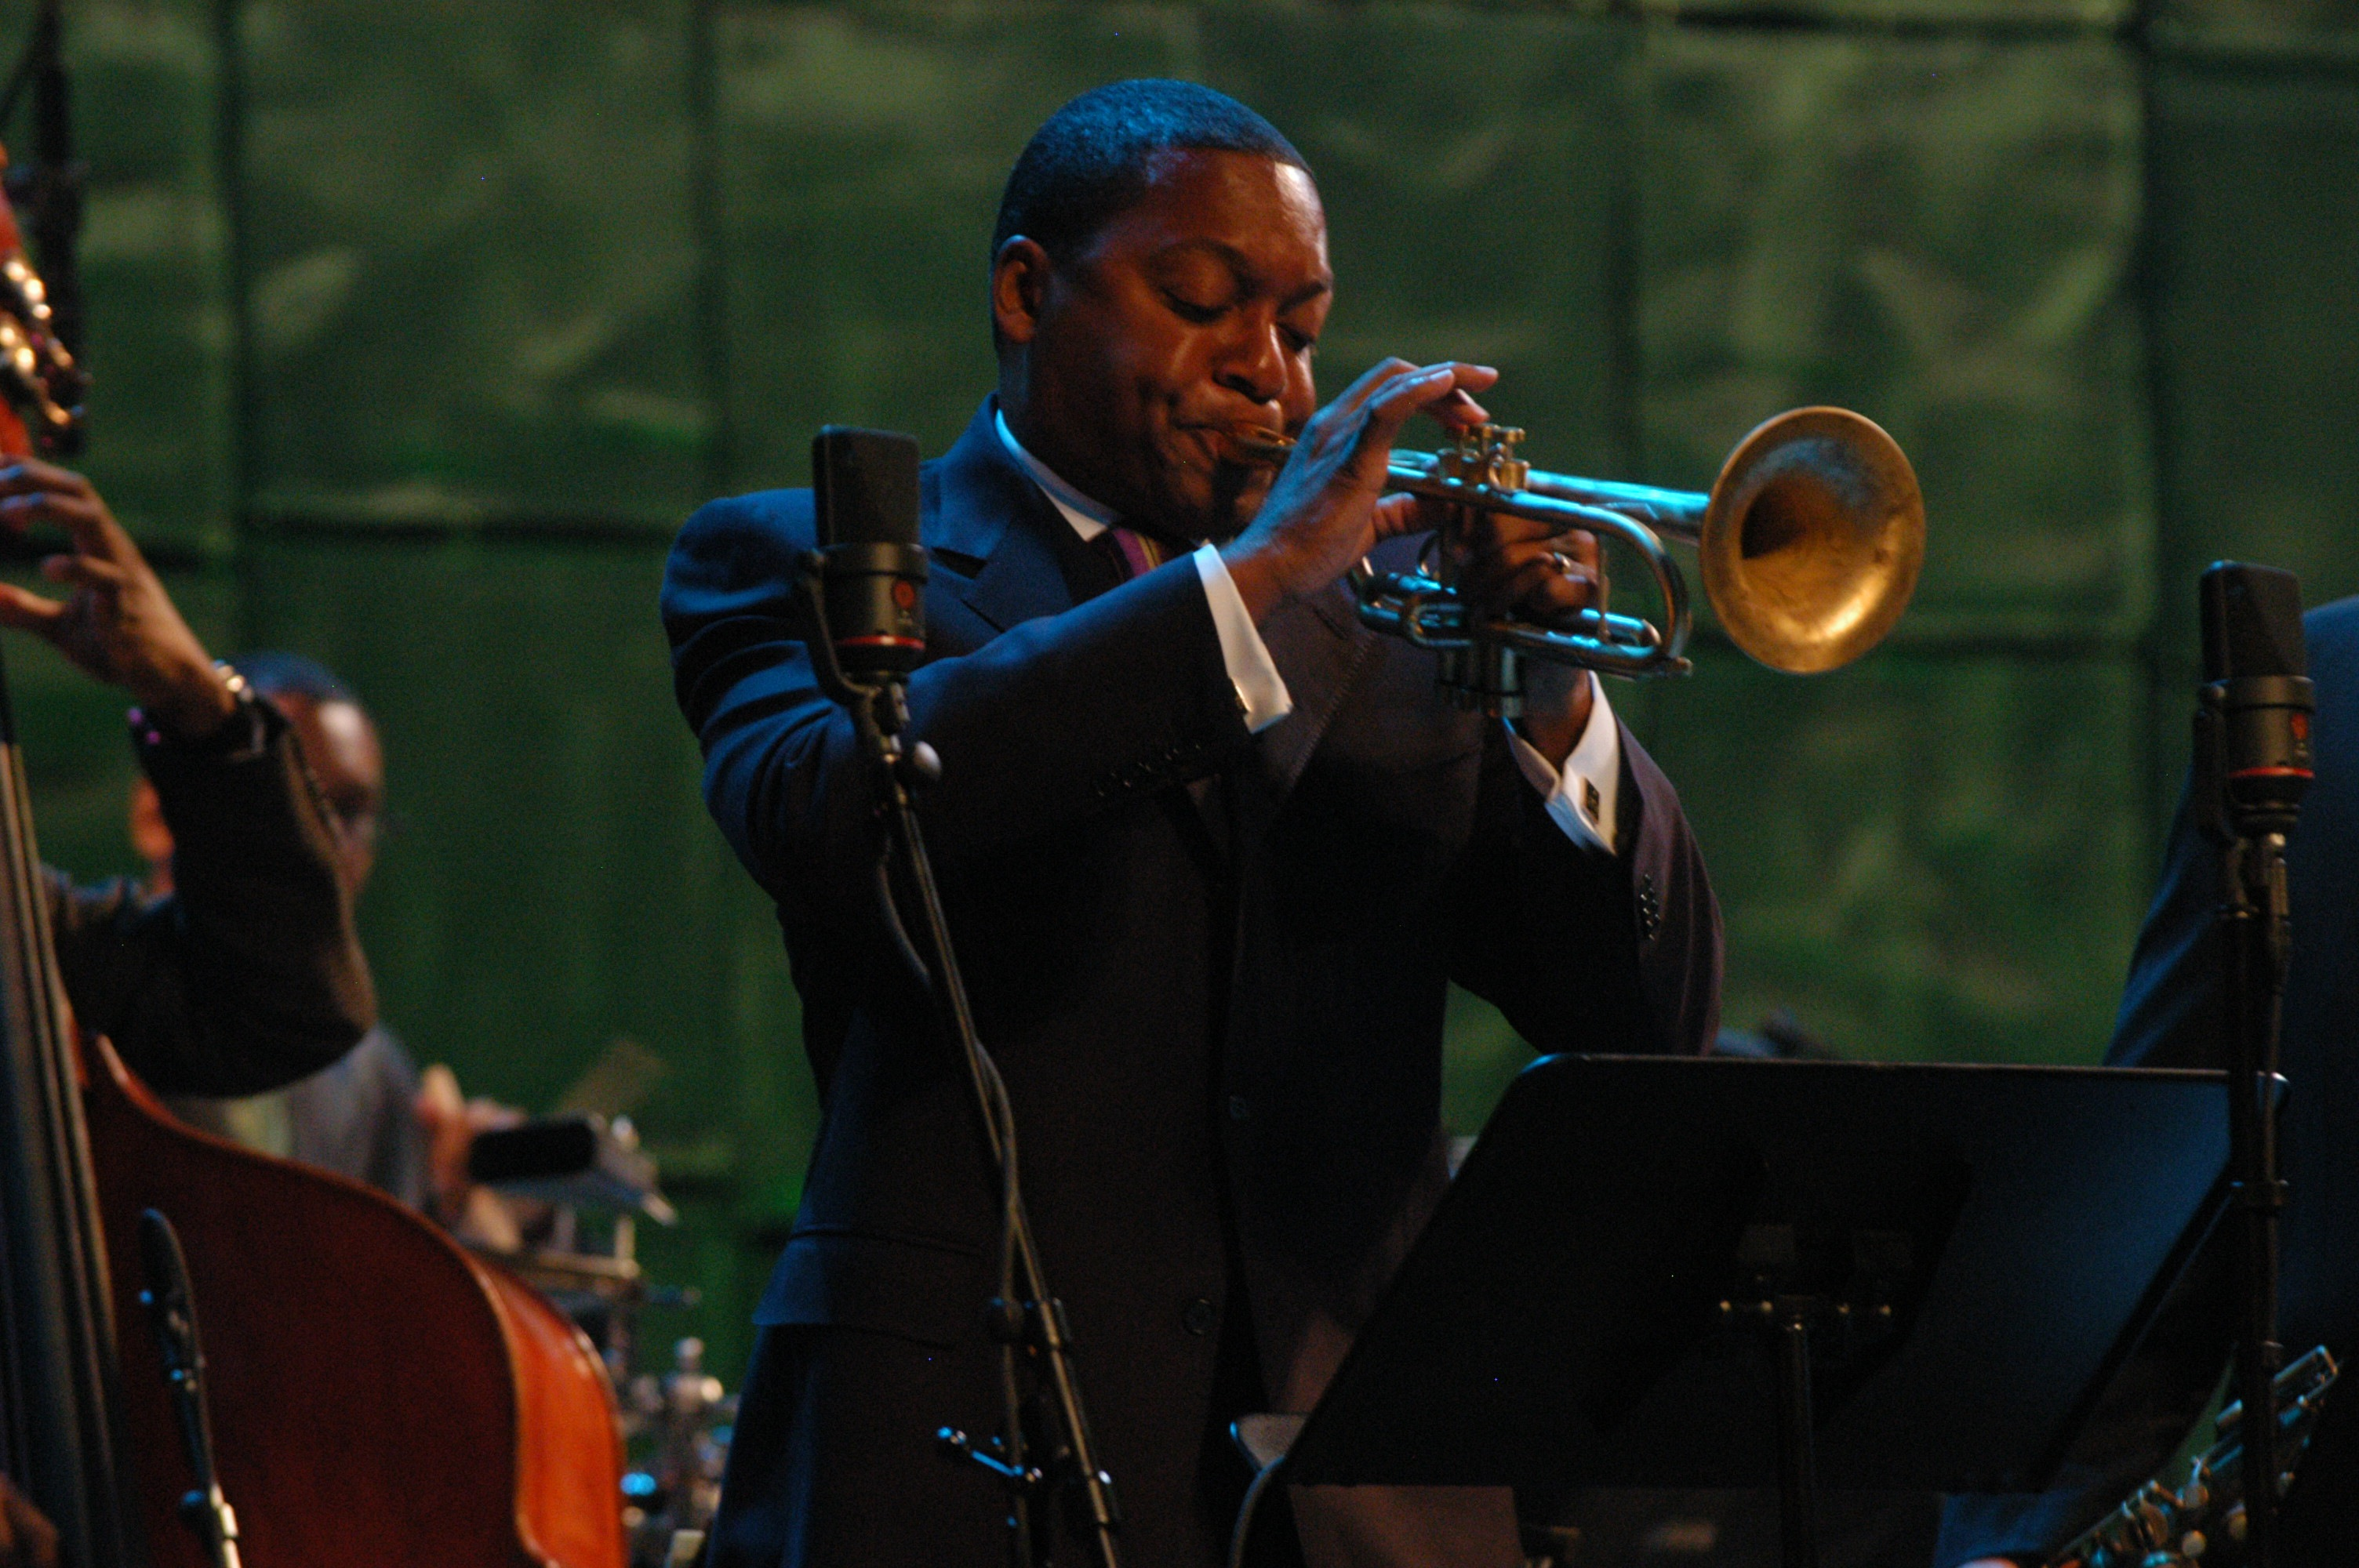 Wynton Marsalis Performs in the Allen Room at Jazz at Lincoln Center